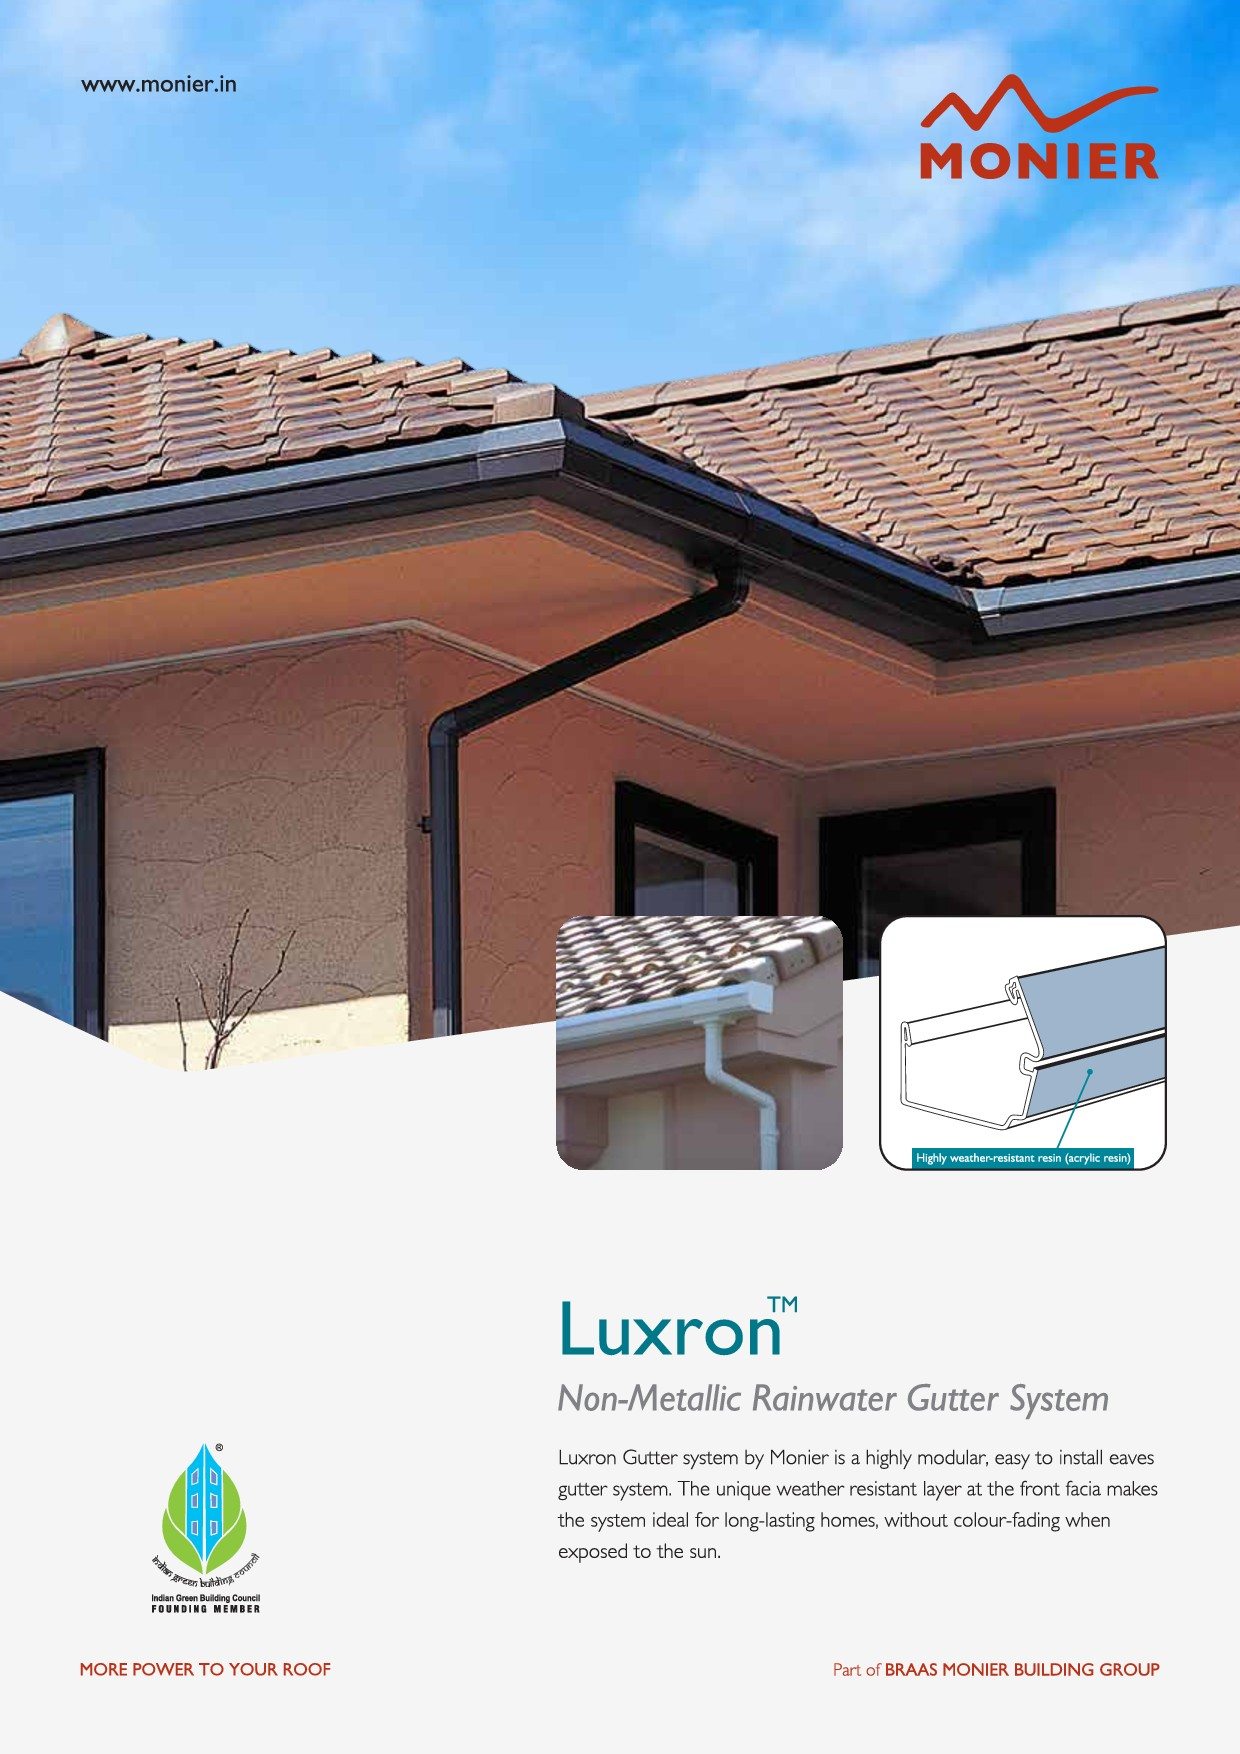 MONIER ROOFING Products Catalogue